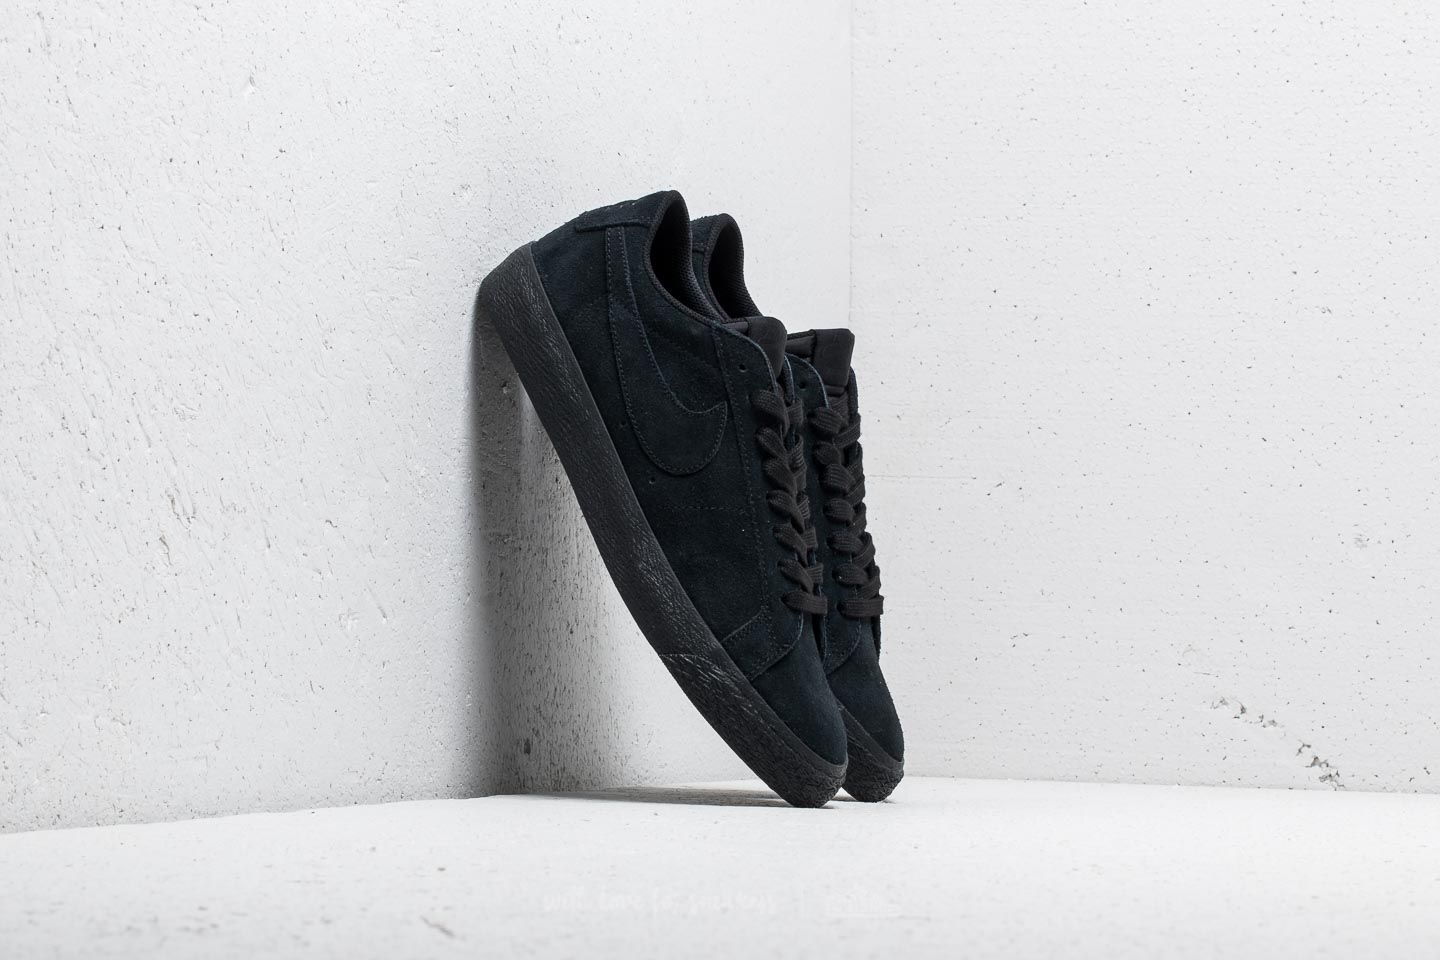 Nike SB Zoom Blazer Low Black/ Black-Gunsmoke